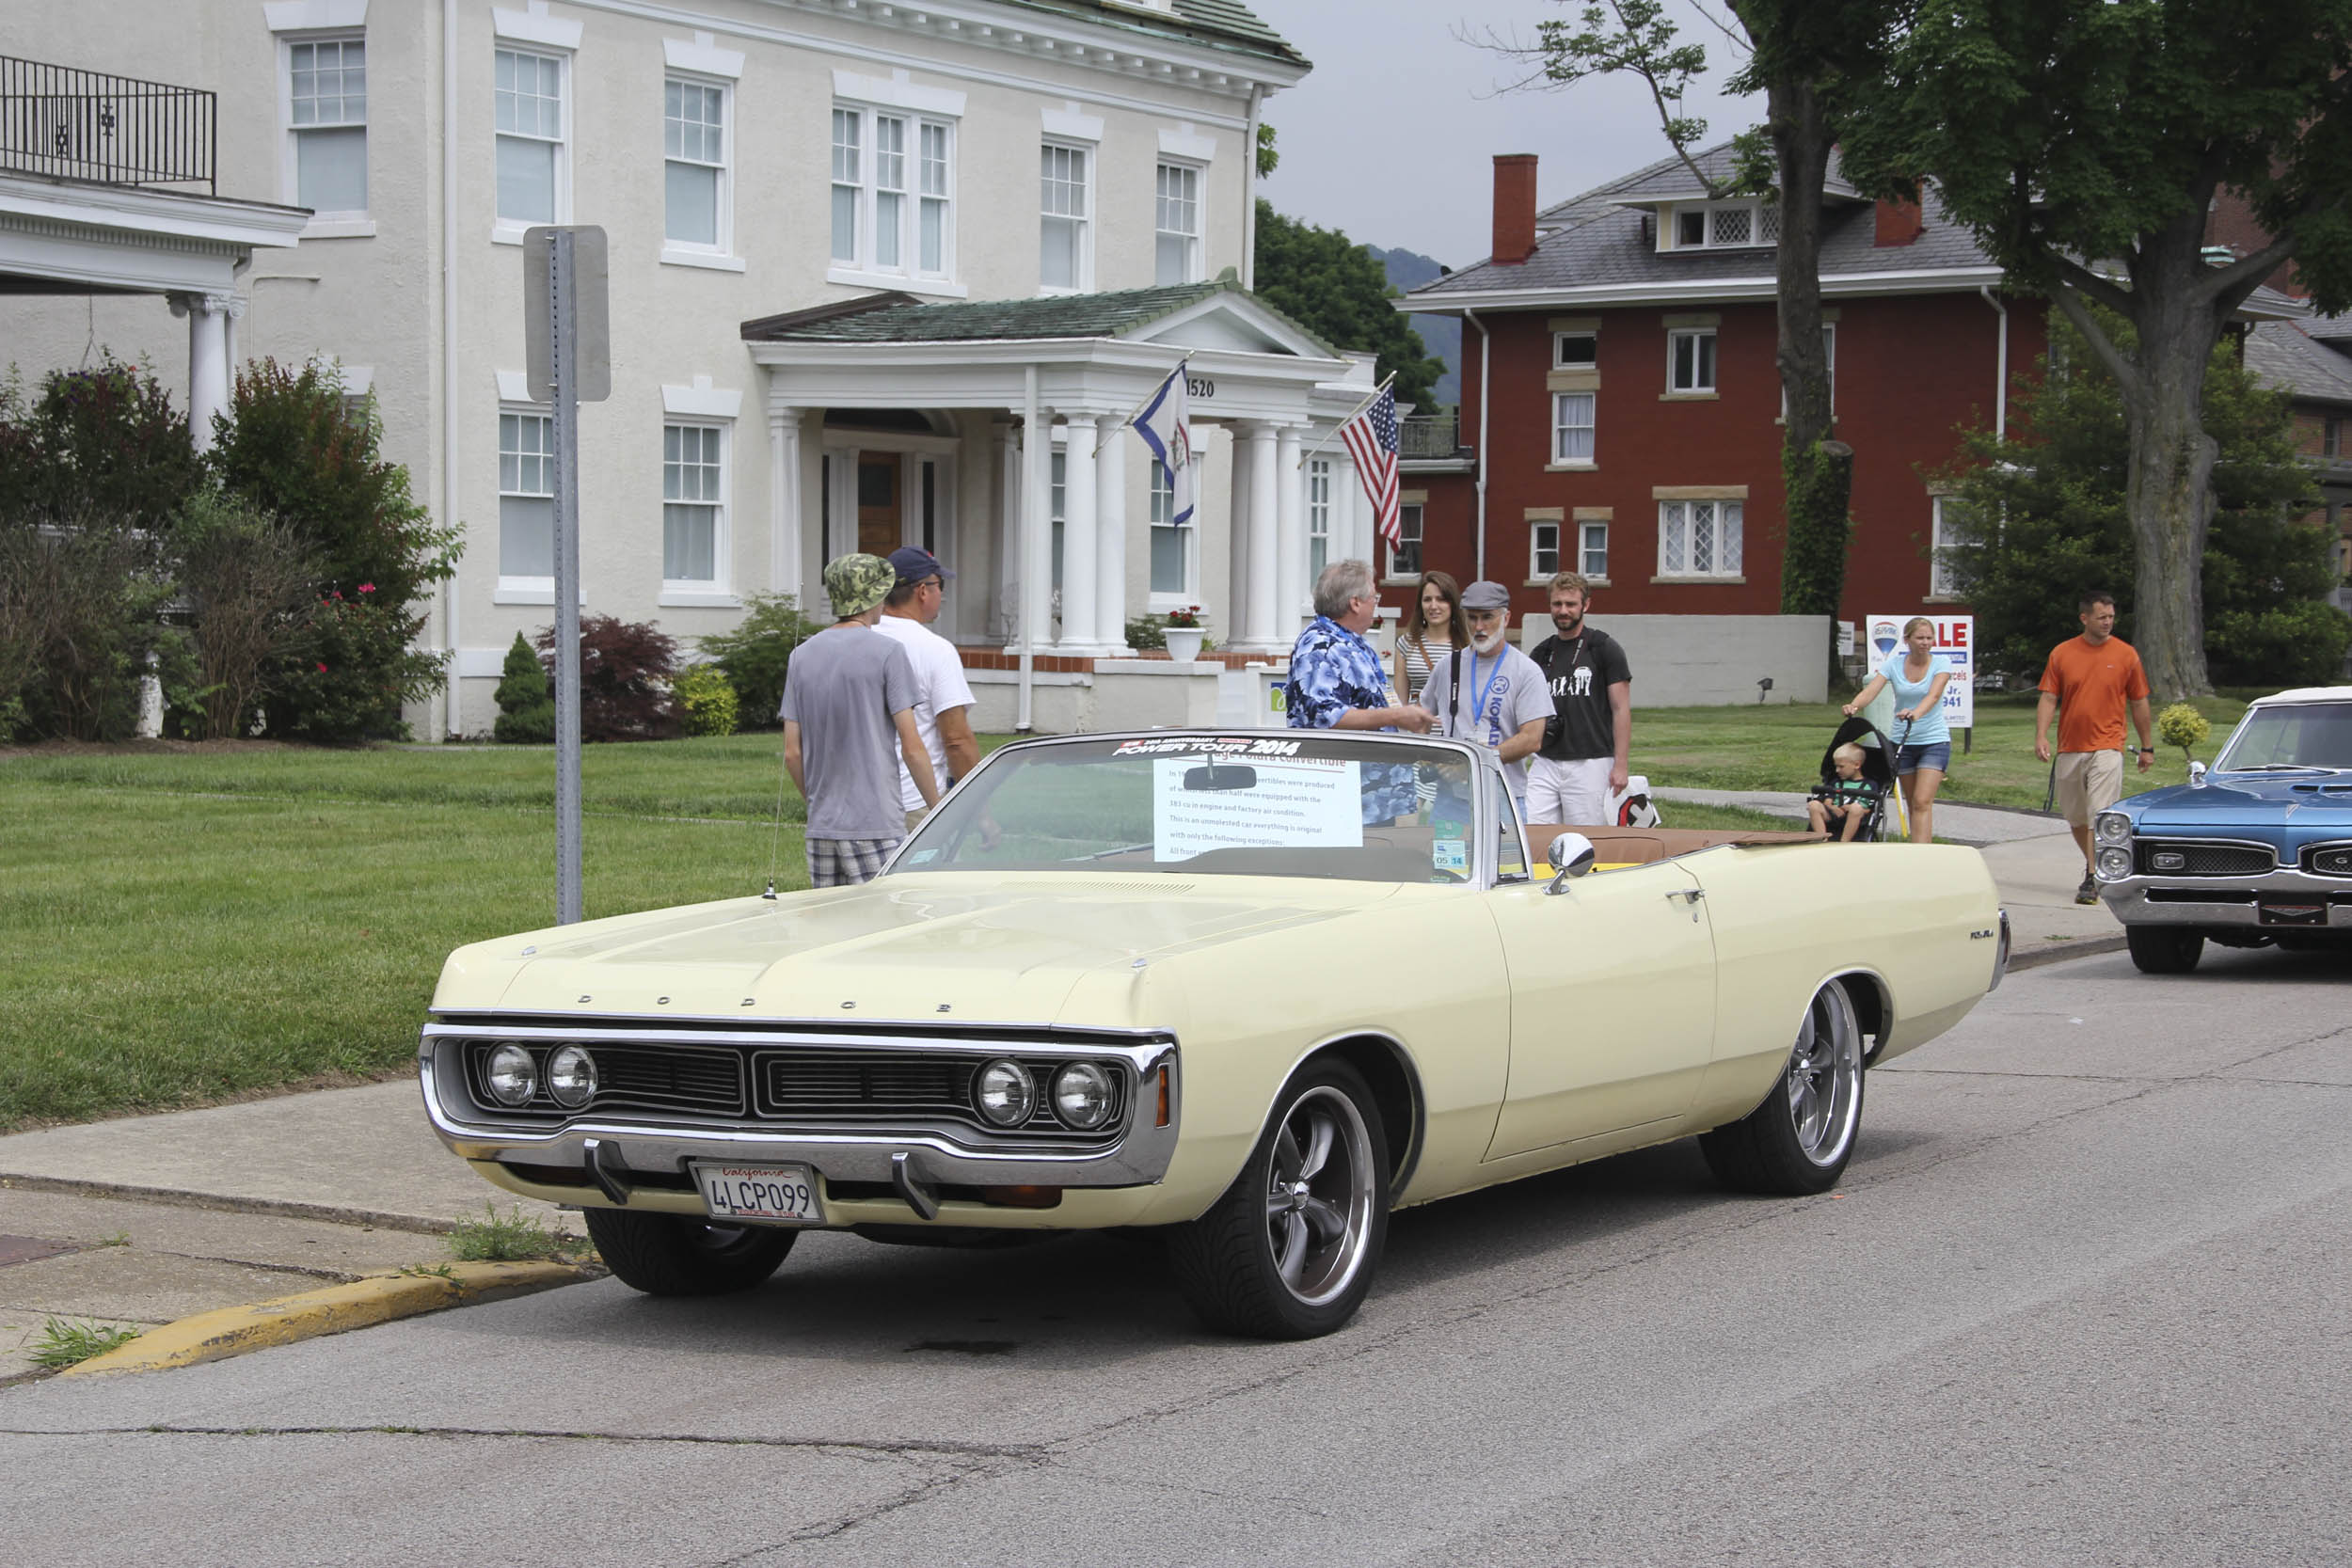 By 1970 you could no longer order a full-size Dodge Polara with a four-speed